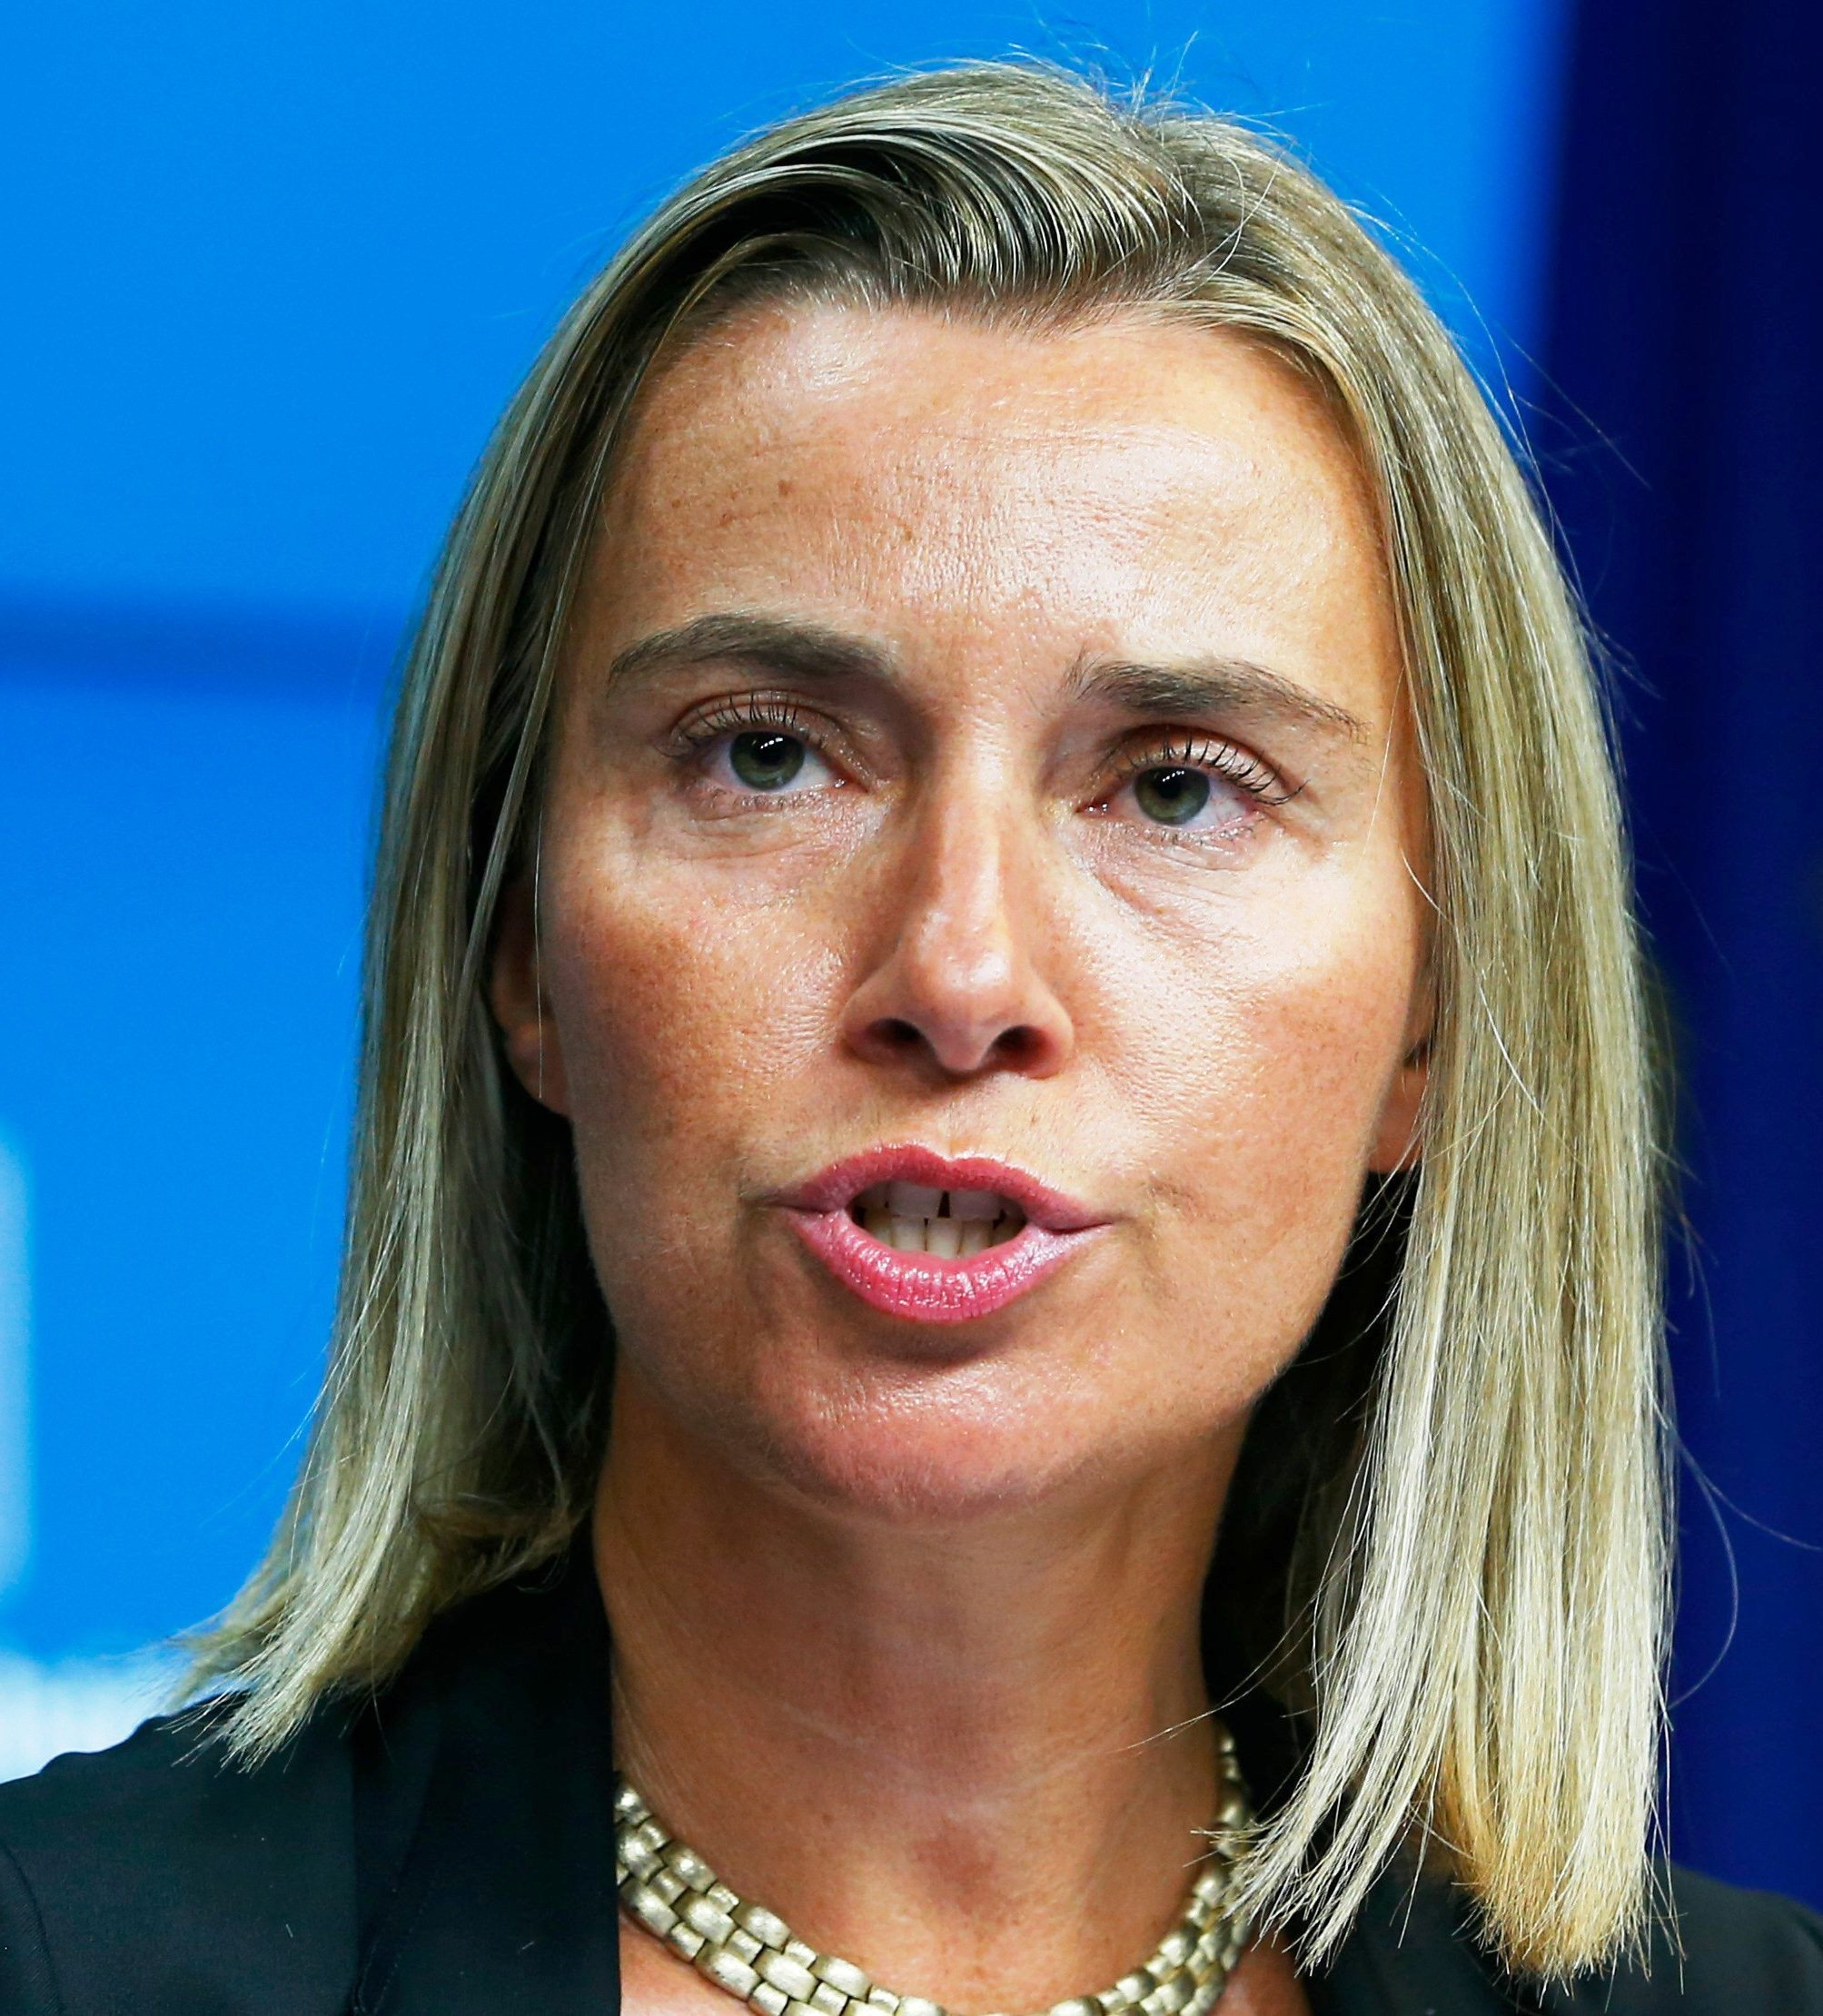 EU Foreign Affairs Council extends sanctions on Russia until September